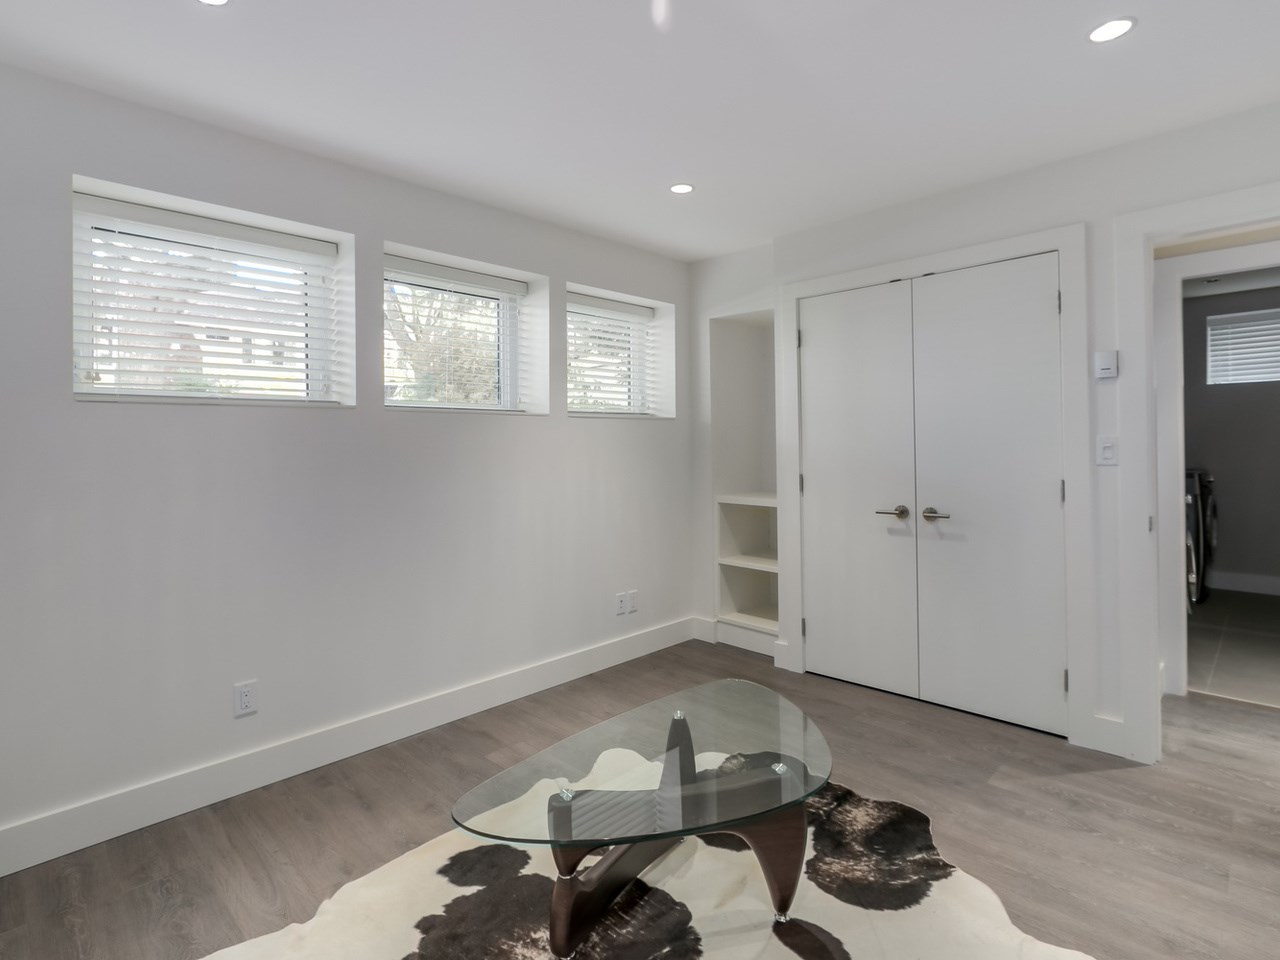 Photo 16: 2596 W 13TH AVENUE in Vancouver: Kitsilano House for sale (Vancouver West)  : MLS(r) # R2059928